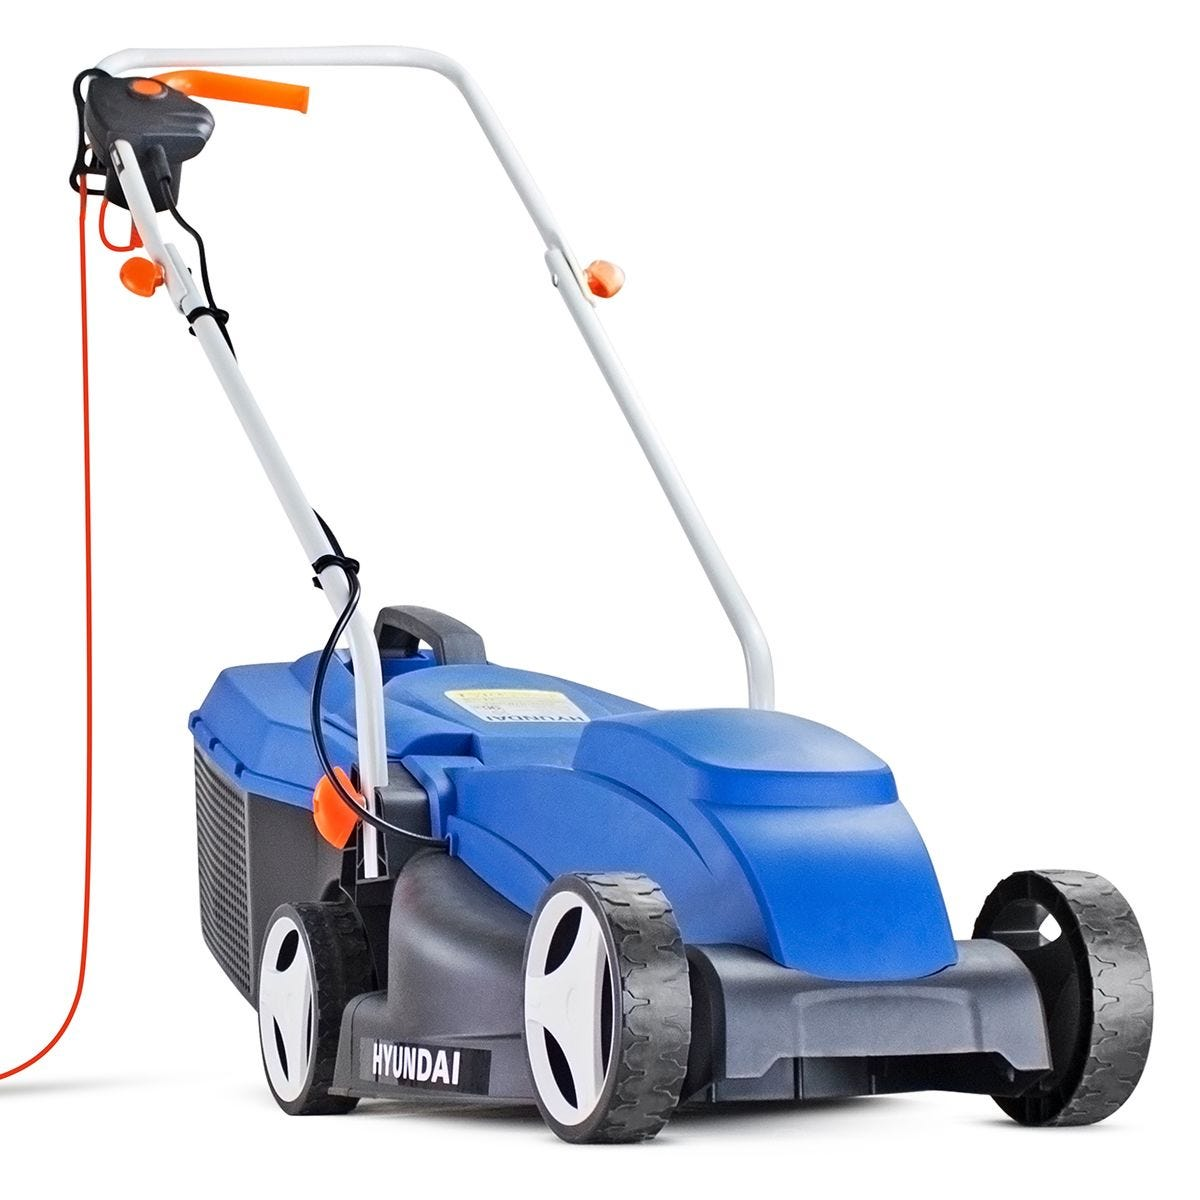 Hyundai HYM3200E Corded Electric 1200W/240V Rotary Lawnmower